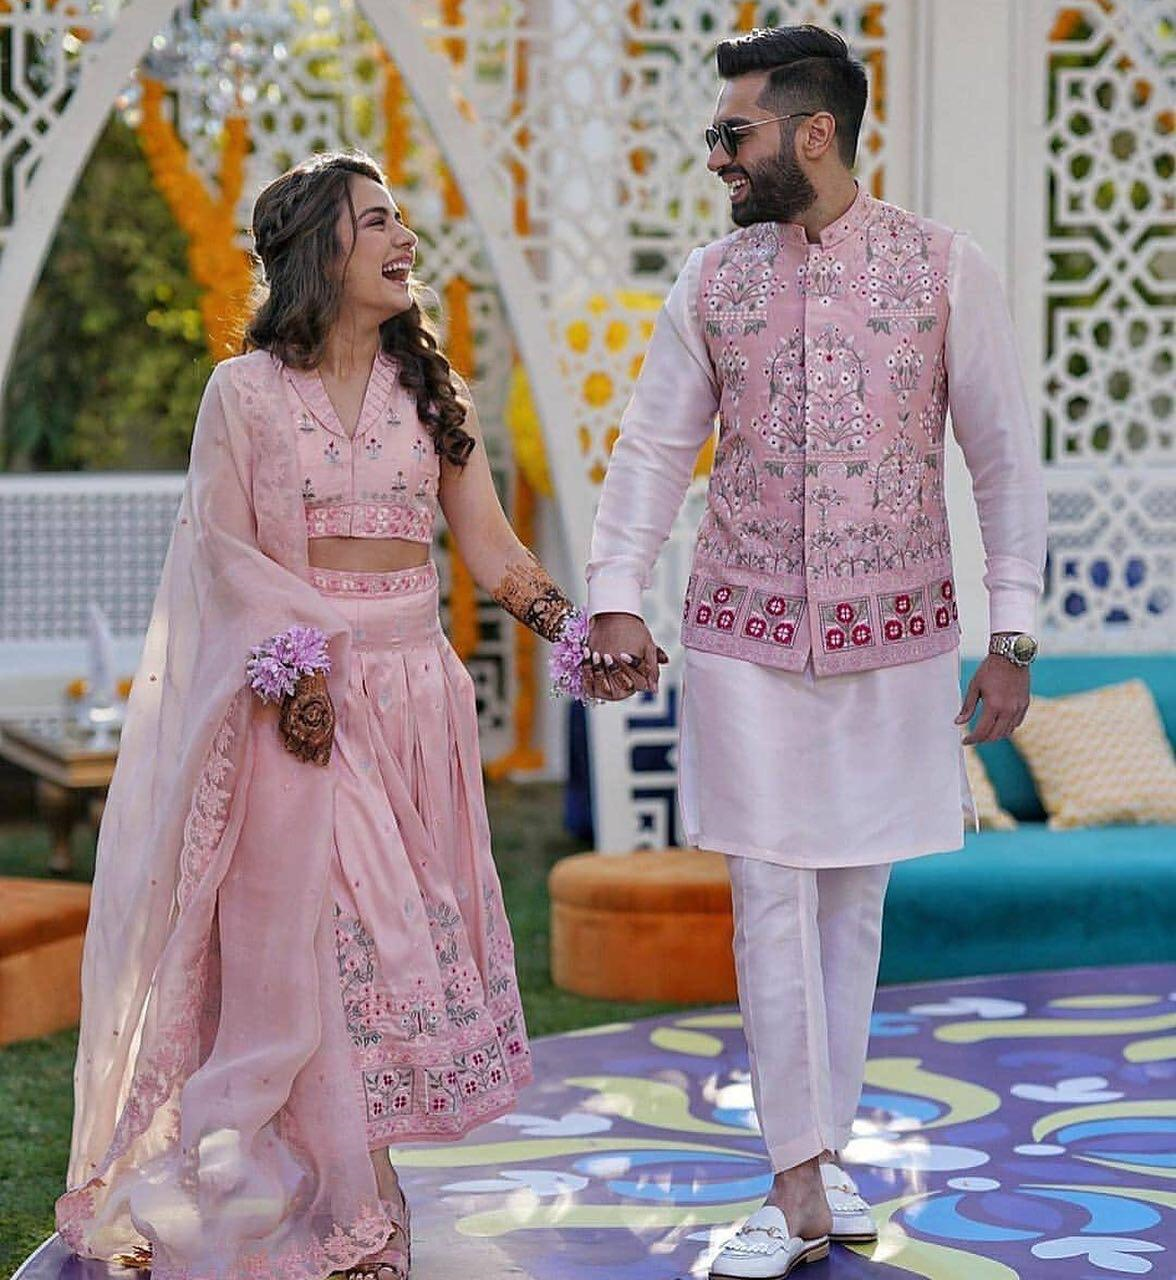 21 Couples Who Stole The Show With Their Stylish Wedding Looks Wedding Dresses Men Indian Engagement Dress For Groom Indian Wedding Outfits [ 1280 x 1176 Pixel ]